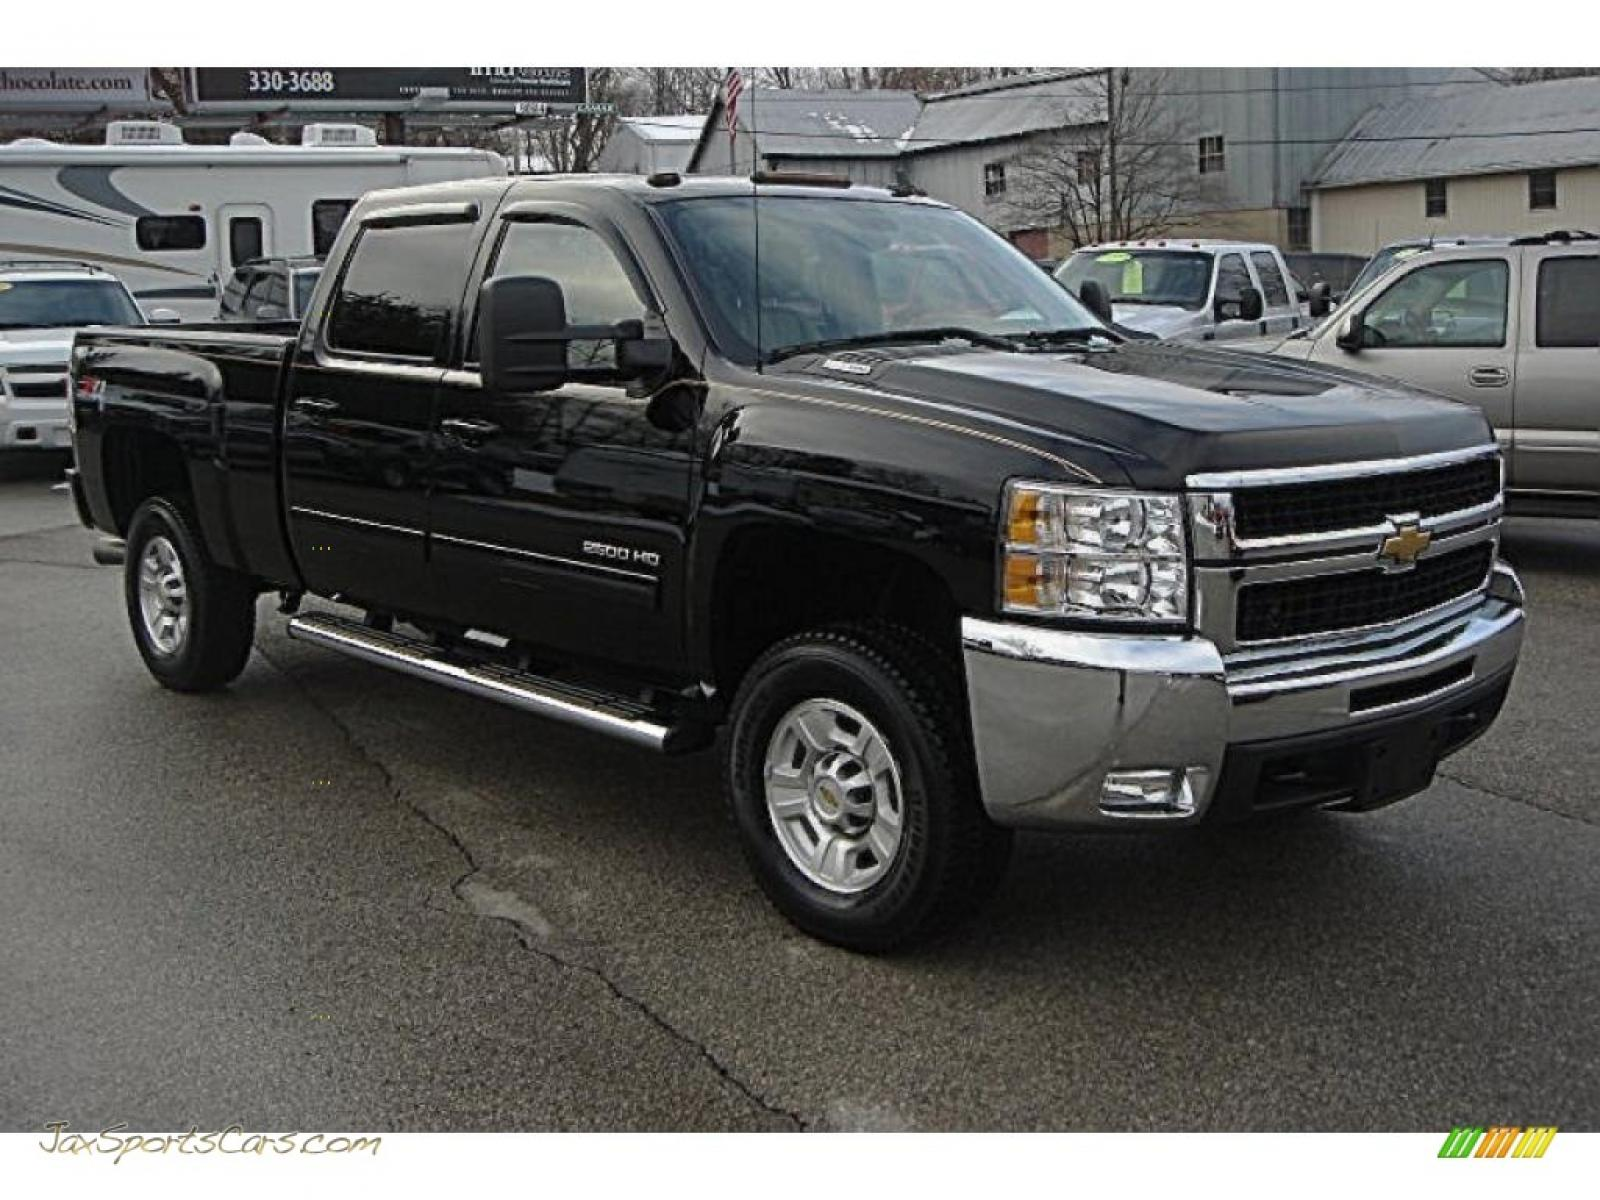 800 1024 1280 1600 origin 2010 chevrolet silverado 2500hd